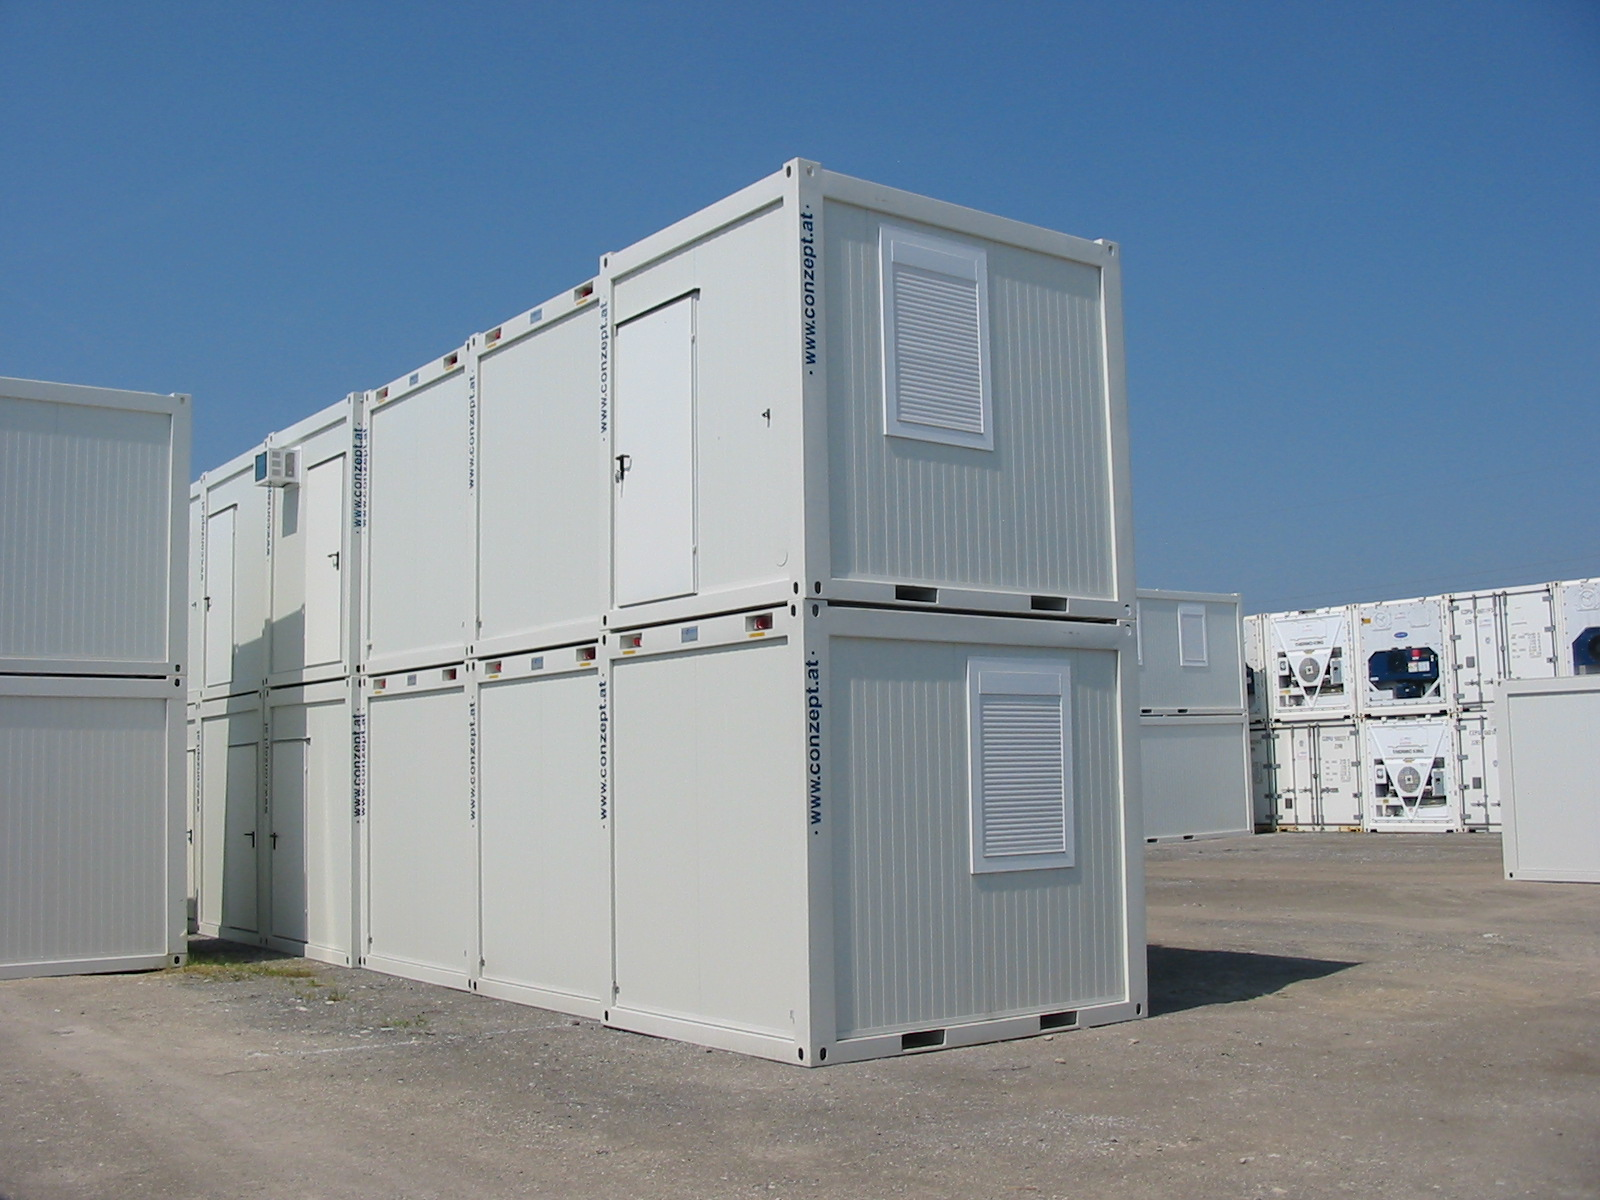 10ft Bürocontainer Standard Neu | Lagercontainer & Raummodule ...